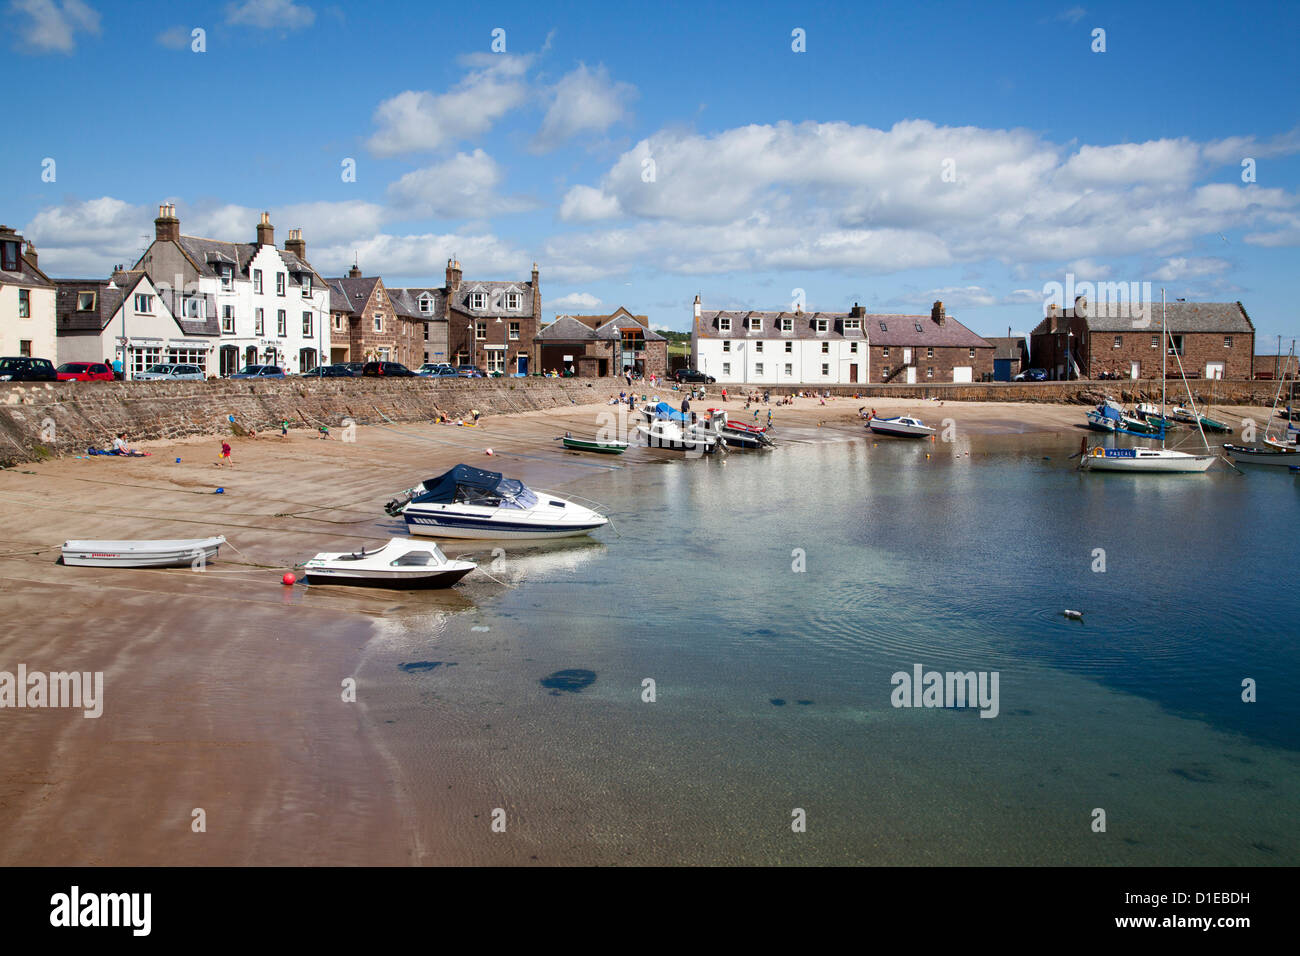 The Harbour at Stonehaven, Aberdeenshire, Scotland, United Kingdom, Europe - Stock Image